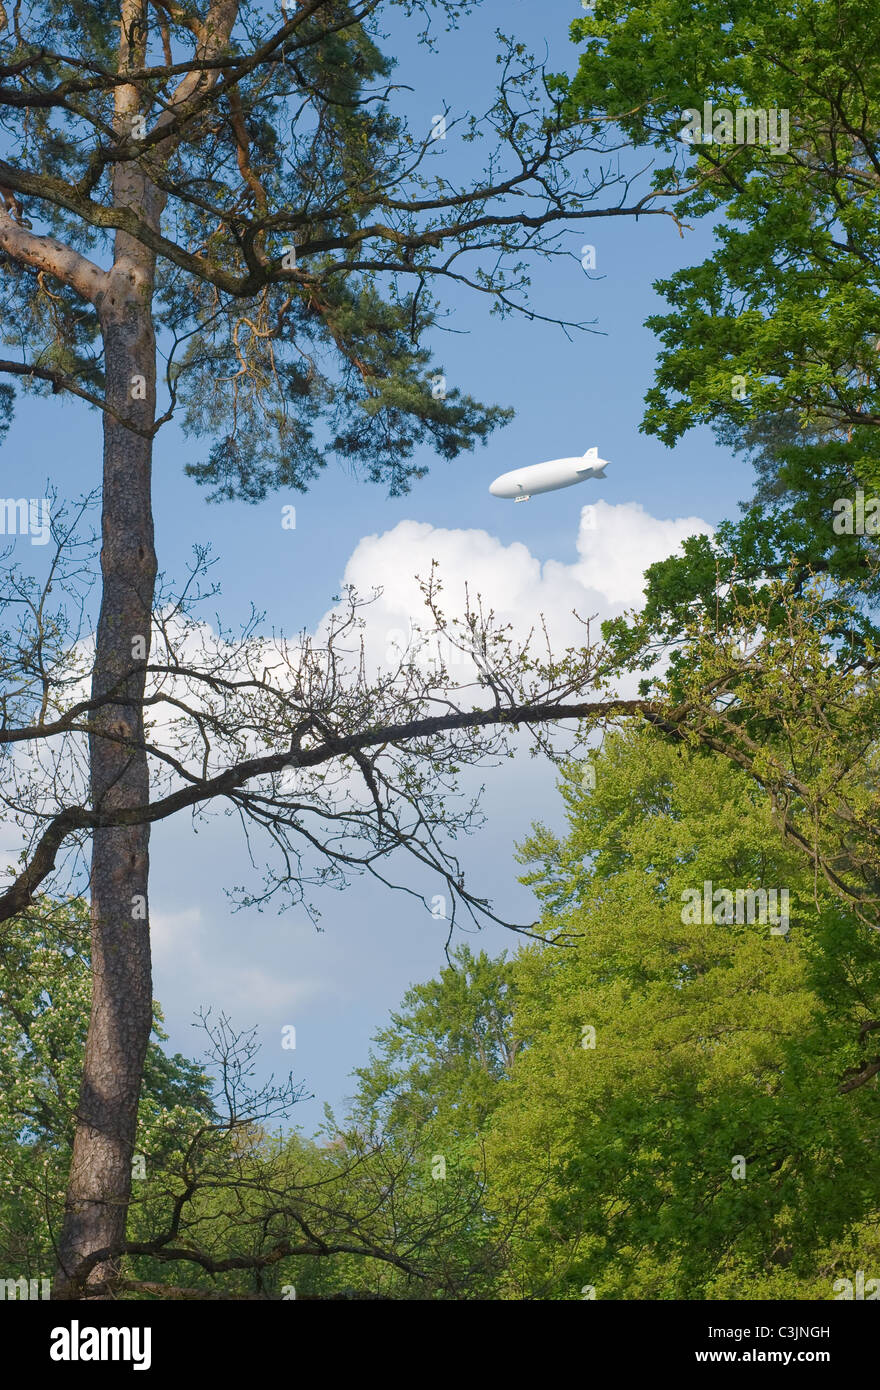 View of Blimp Through a Wooded Landscape - Stock Image